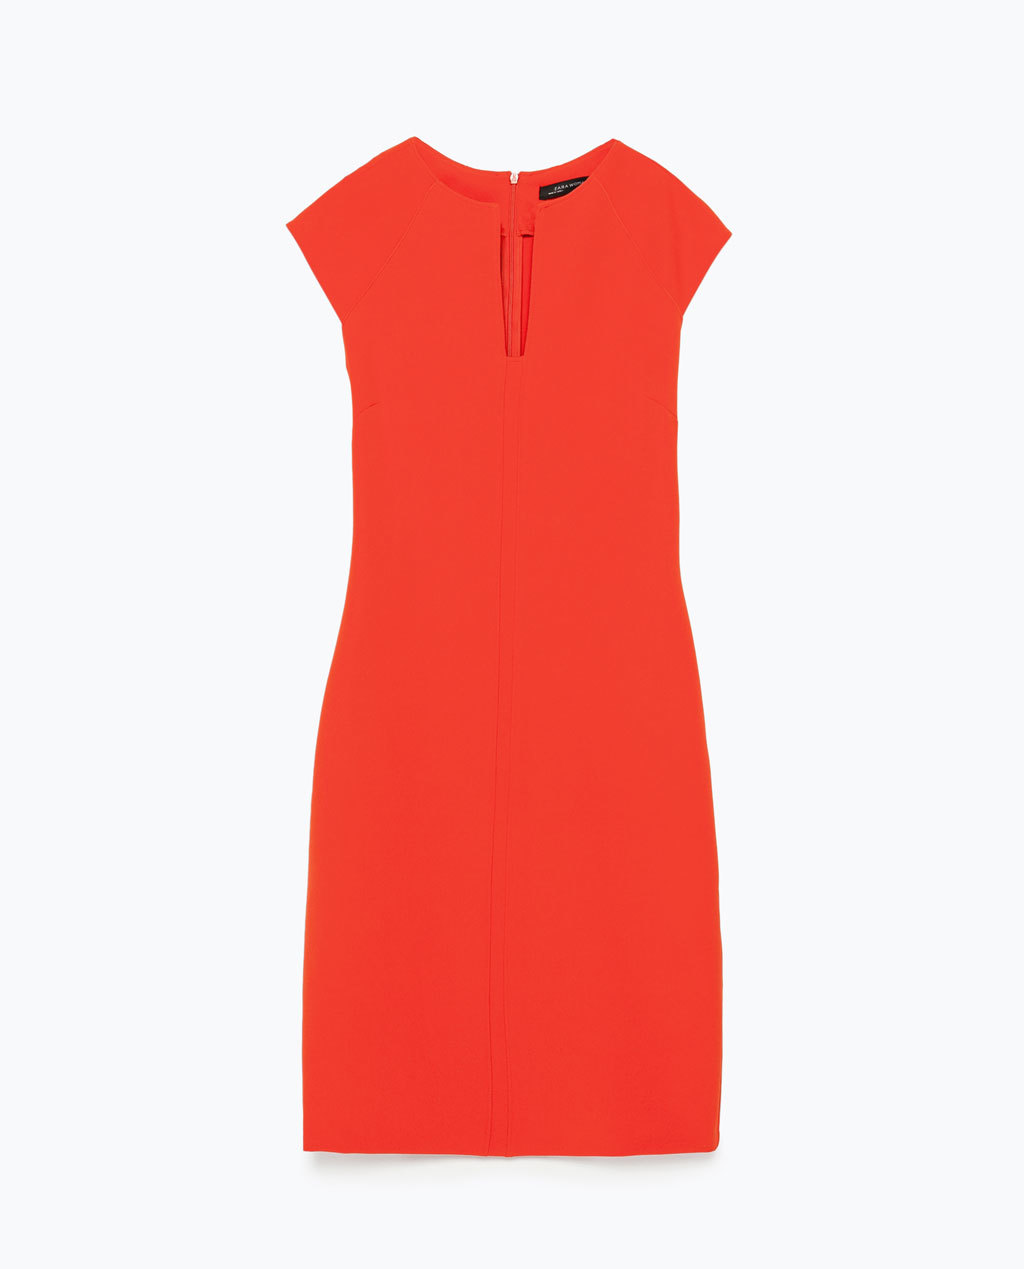 Shift Dress - style: shift; neckline: v-neck; sleeve style: capped; fit: tailored/fitted; pattern: plain; predominant colour: bright orange; length: just above the knee; fibres: polyester/polyamide - stretch; sleeve length: short sleeve; texture group: other - light to midweight; occasions: creative work; season: s/s 2015; wardrobe: highlight